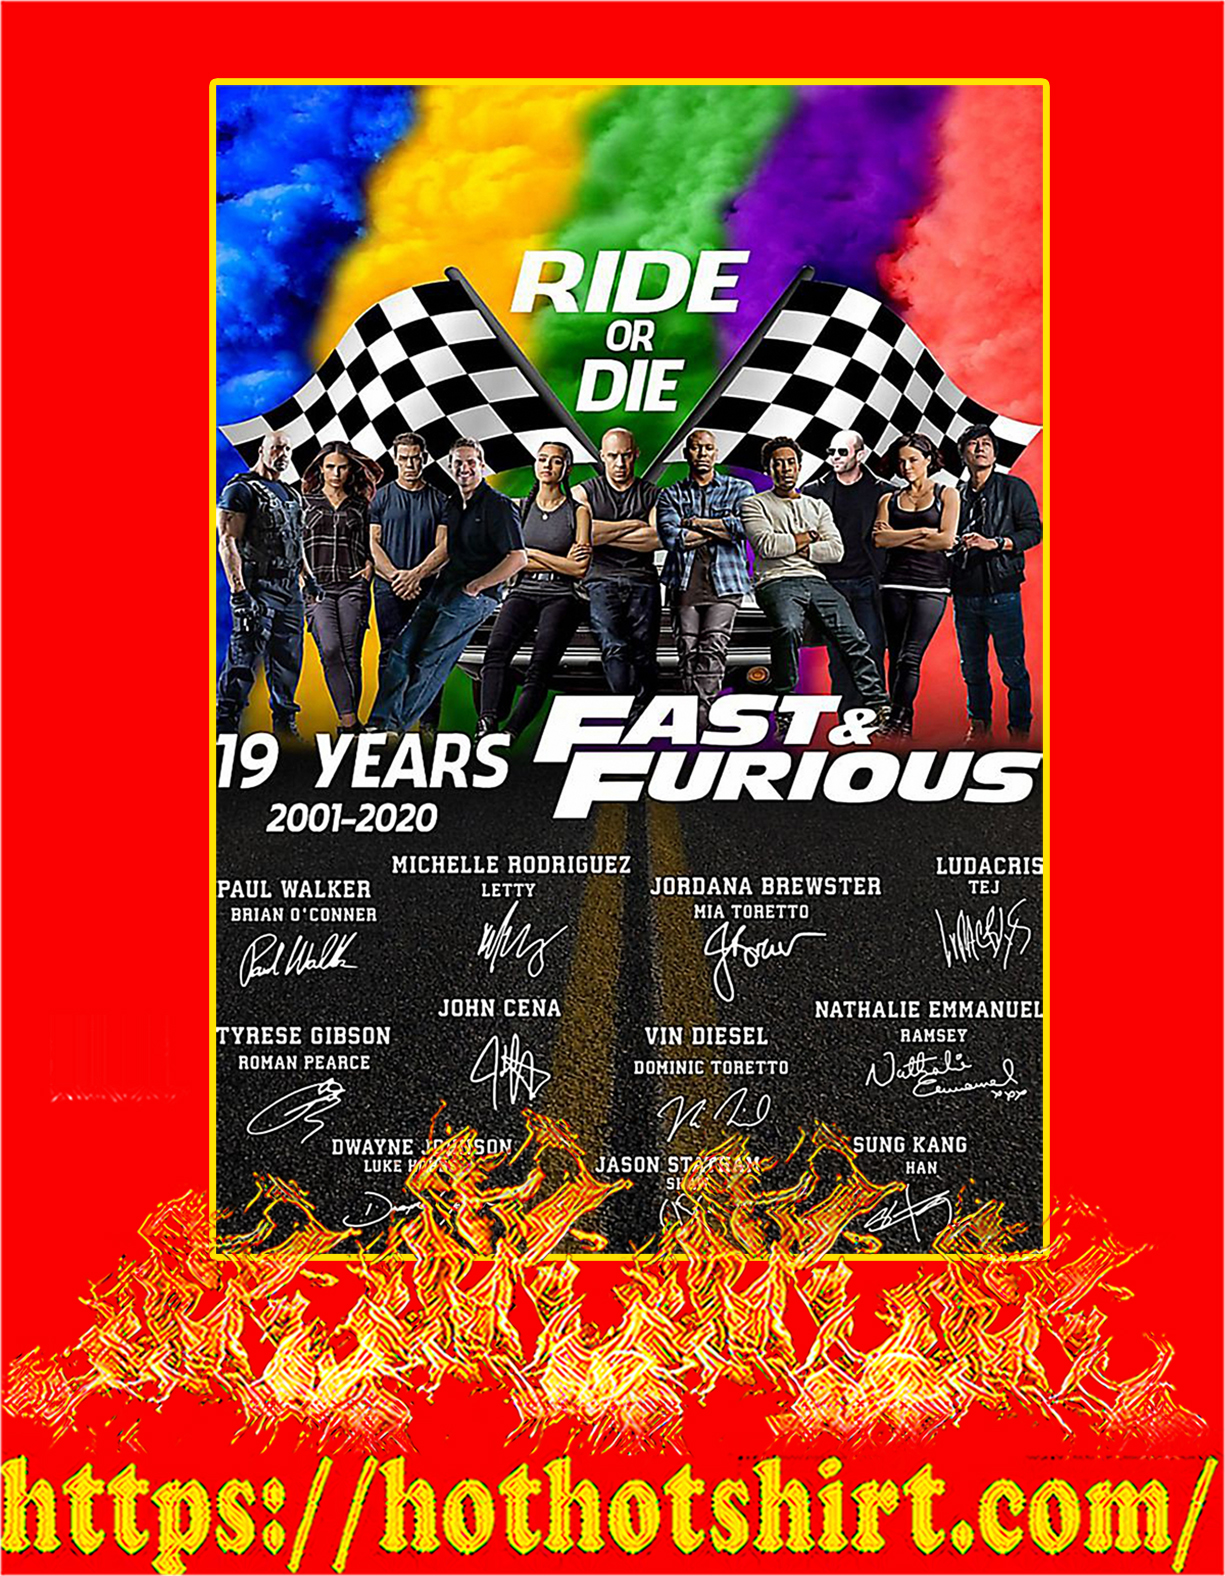 Ride or die 19 years of fast and furious poster - A3